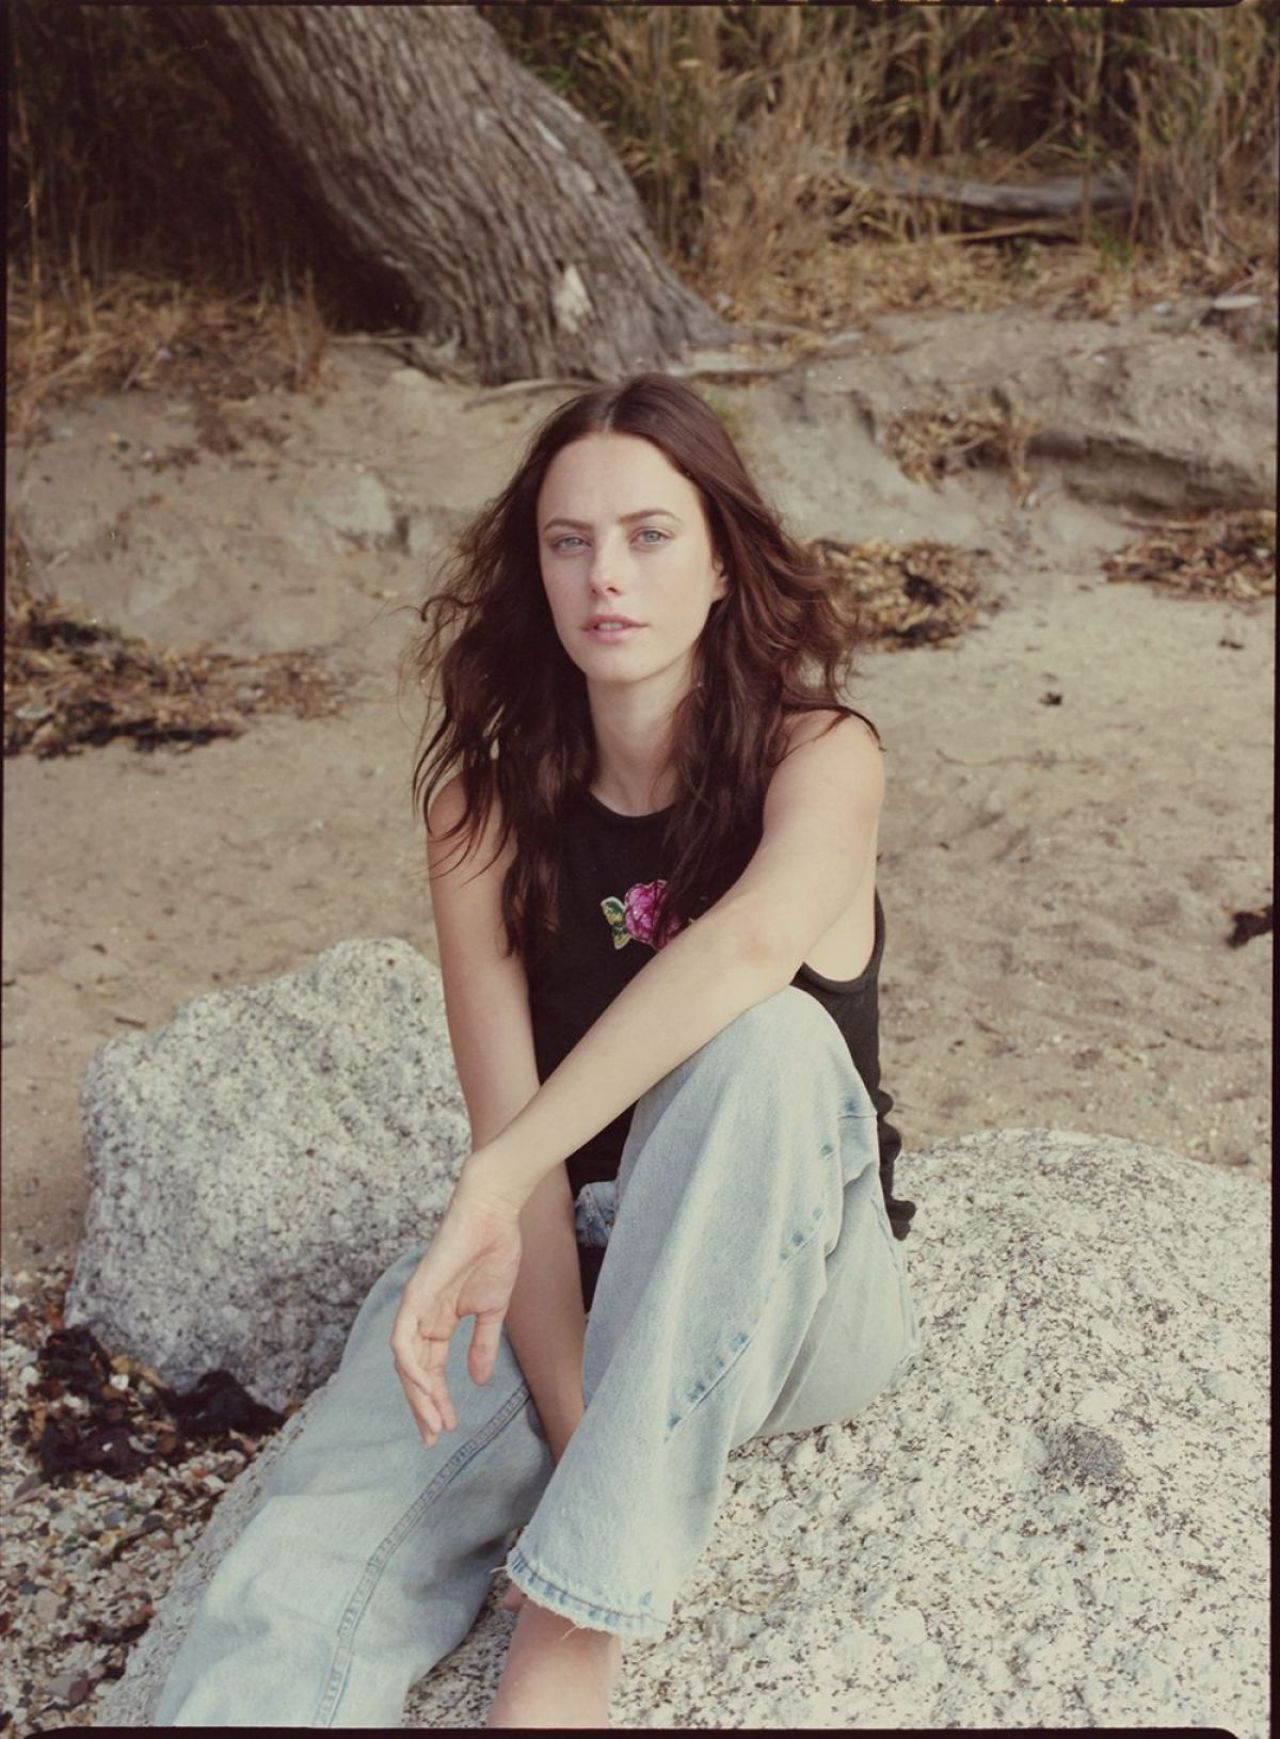 Kaya scodelario photoshoot for wonderland magazine 2019